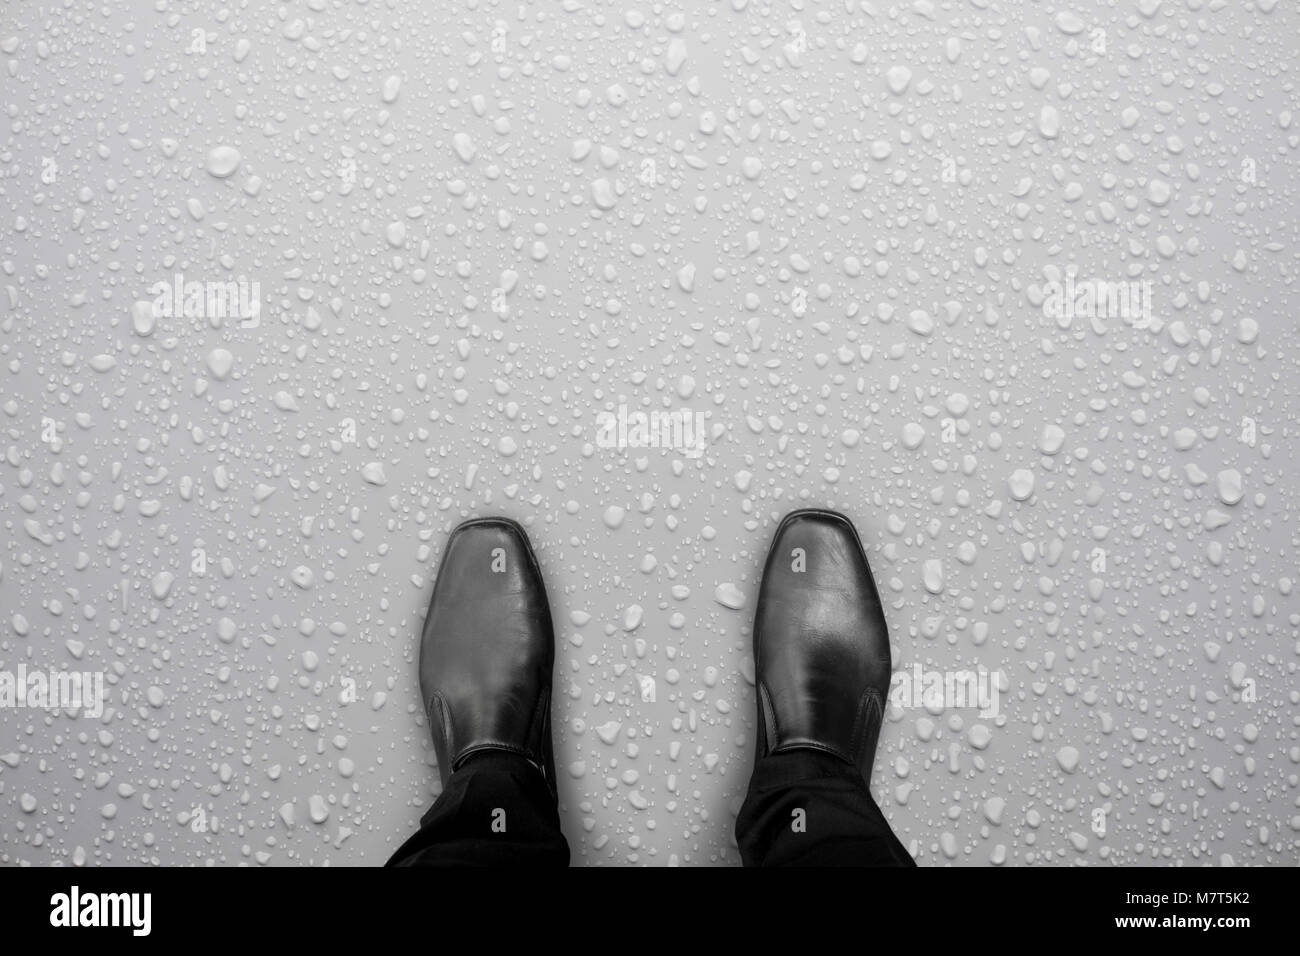 Businessman in black shoes standing on white wet floor. Water drop on the floor. Caution, slippery floor. - Stock Image